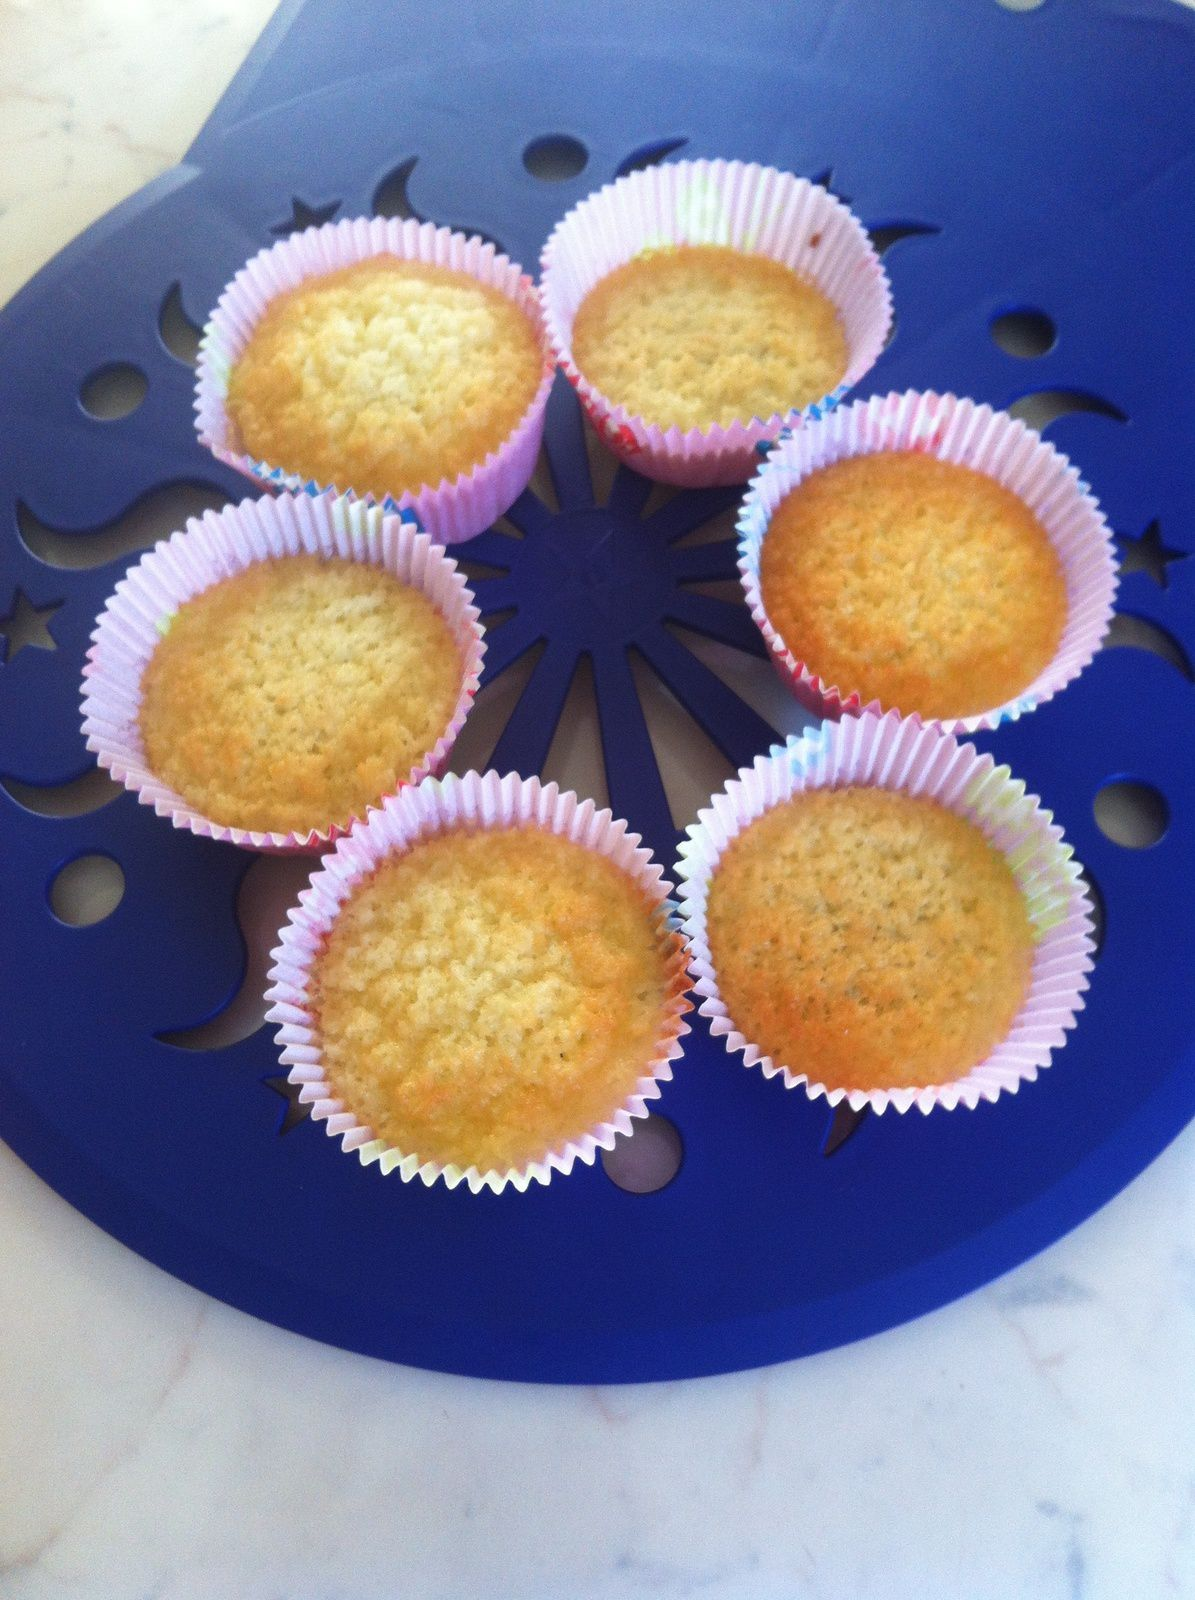 muffins choco coco (sans thermomix)